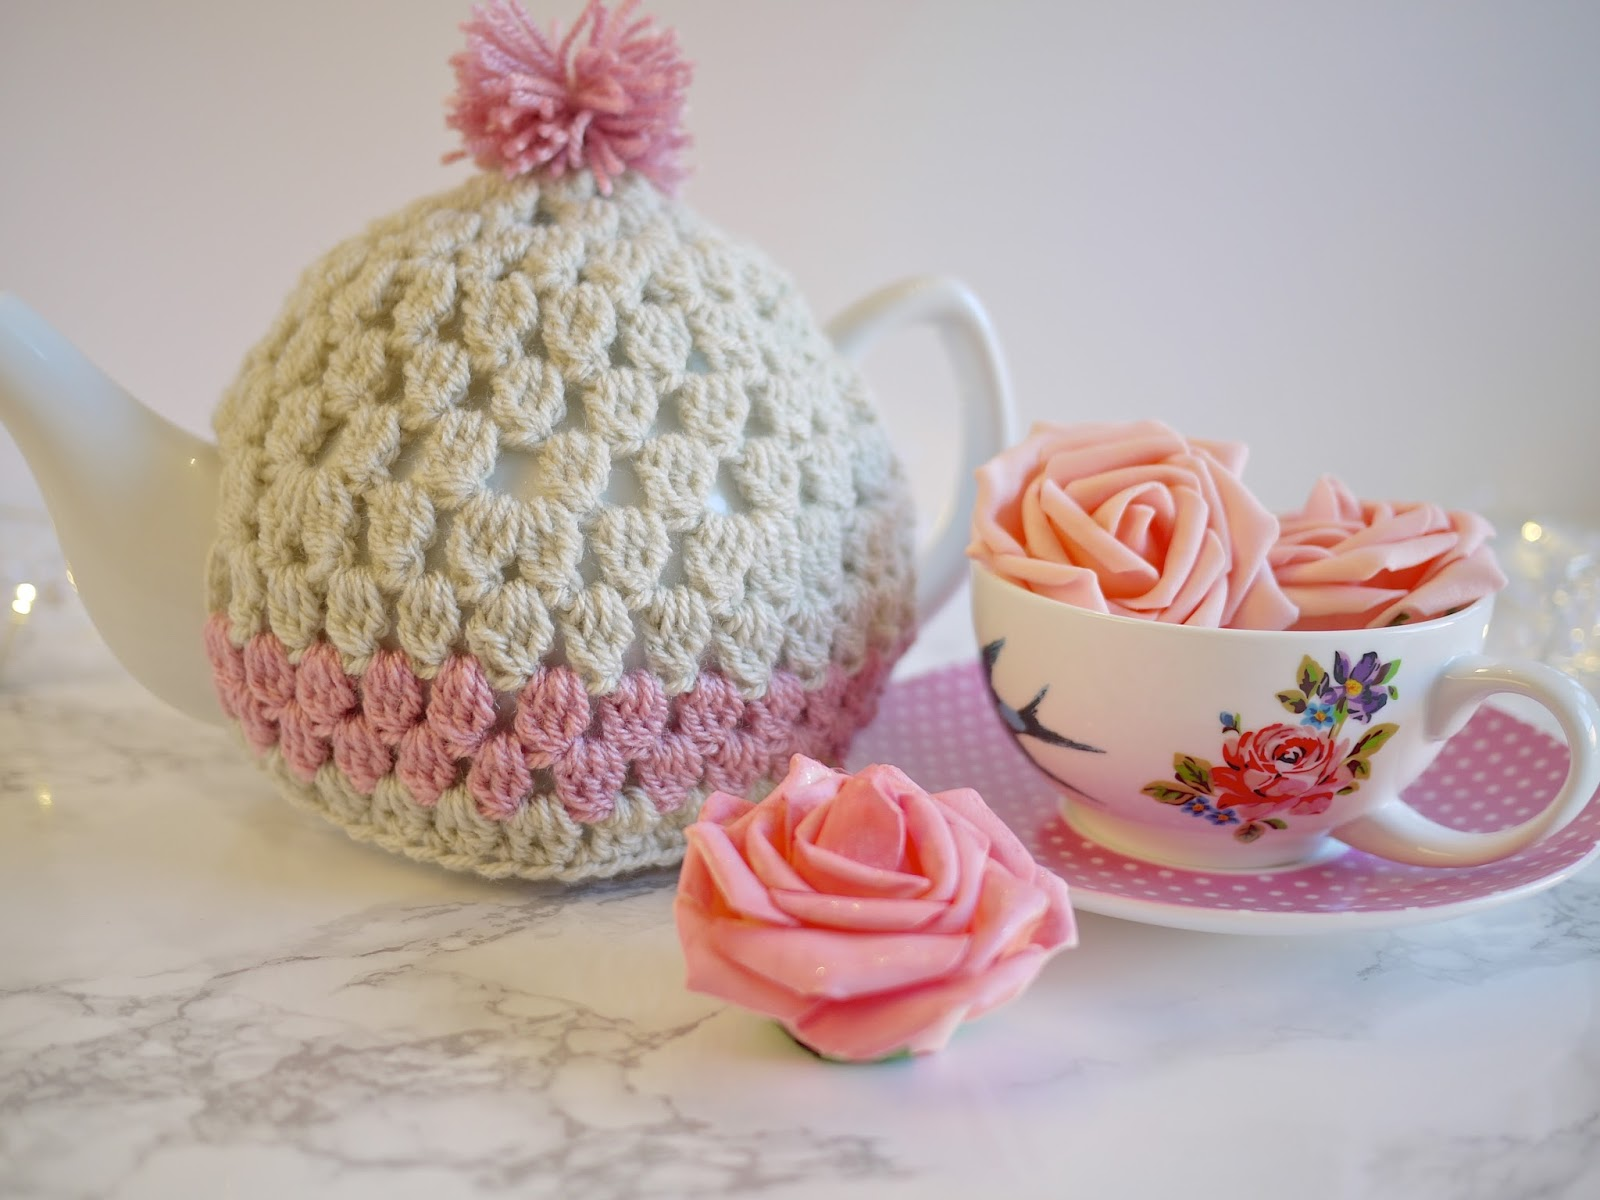 tea cosy template - crochet tea cosy pattern bella coco by sarah jayne